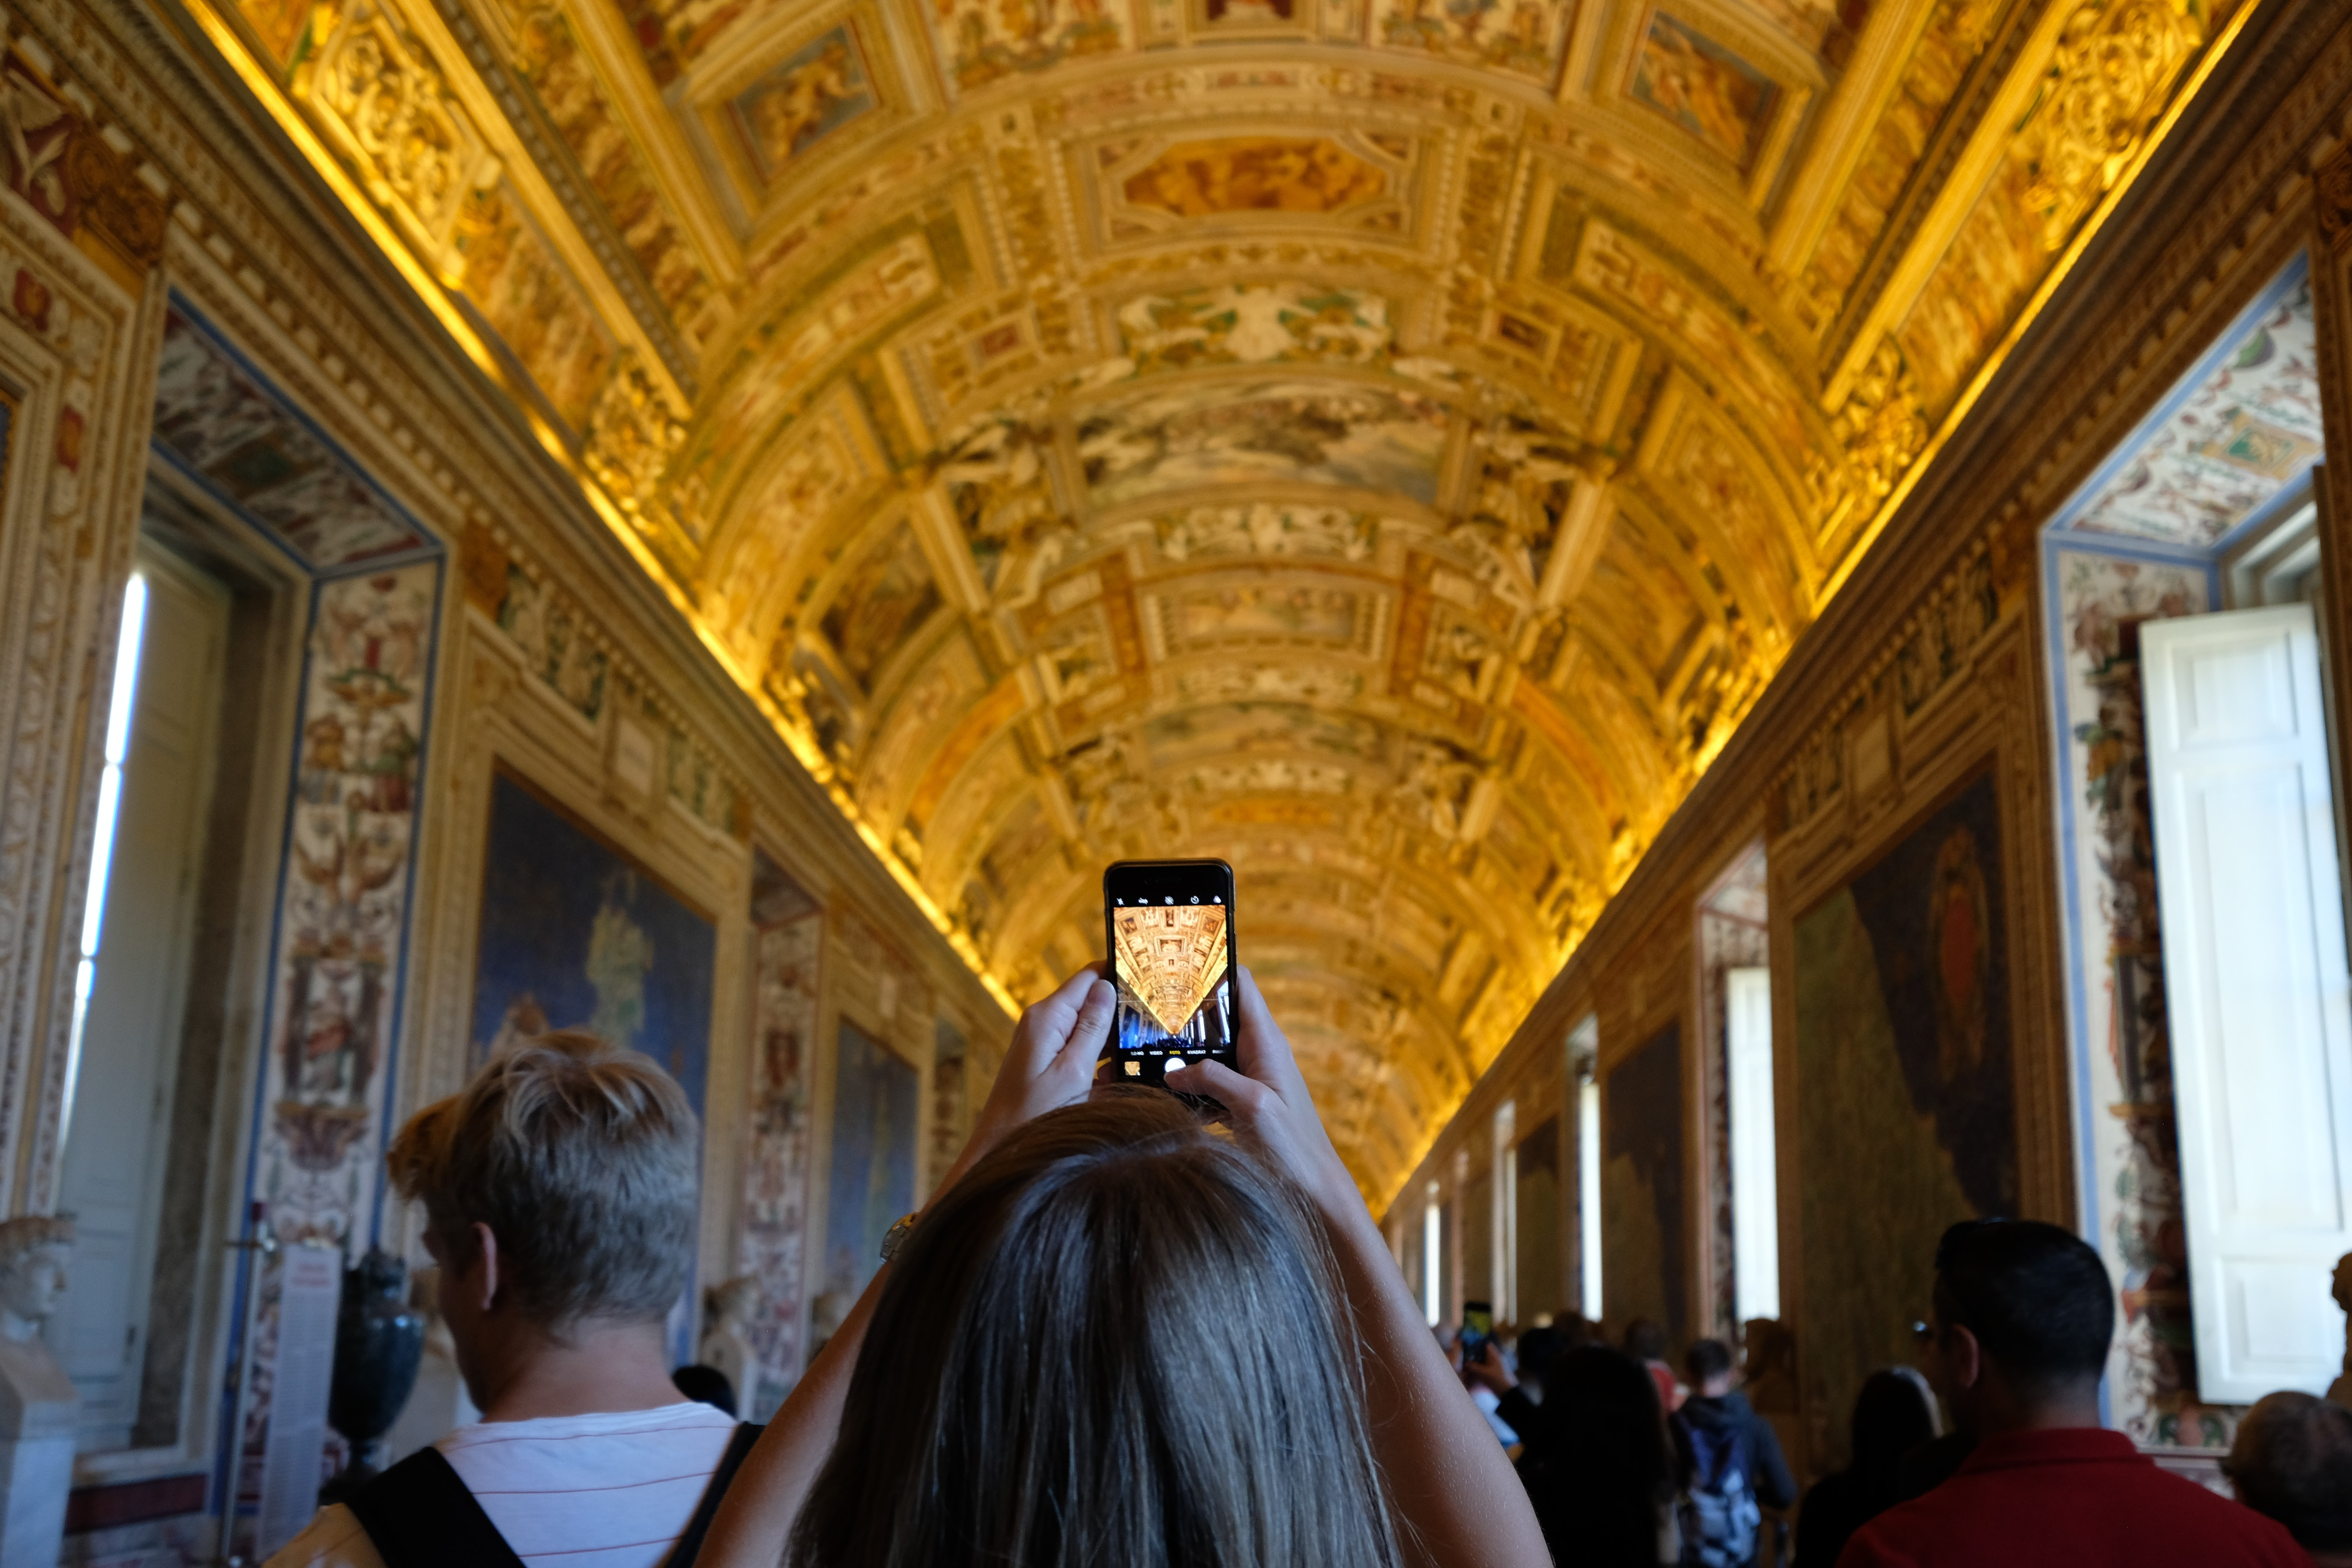 Guided-tour-of-the-vatican